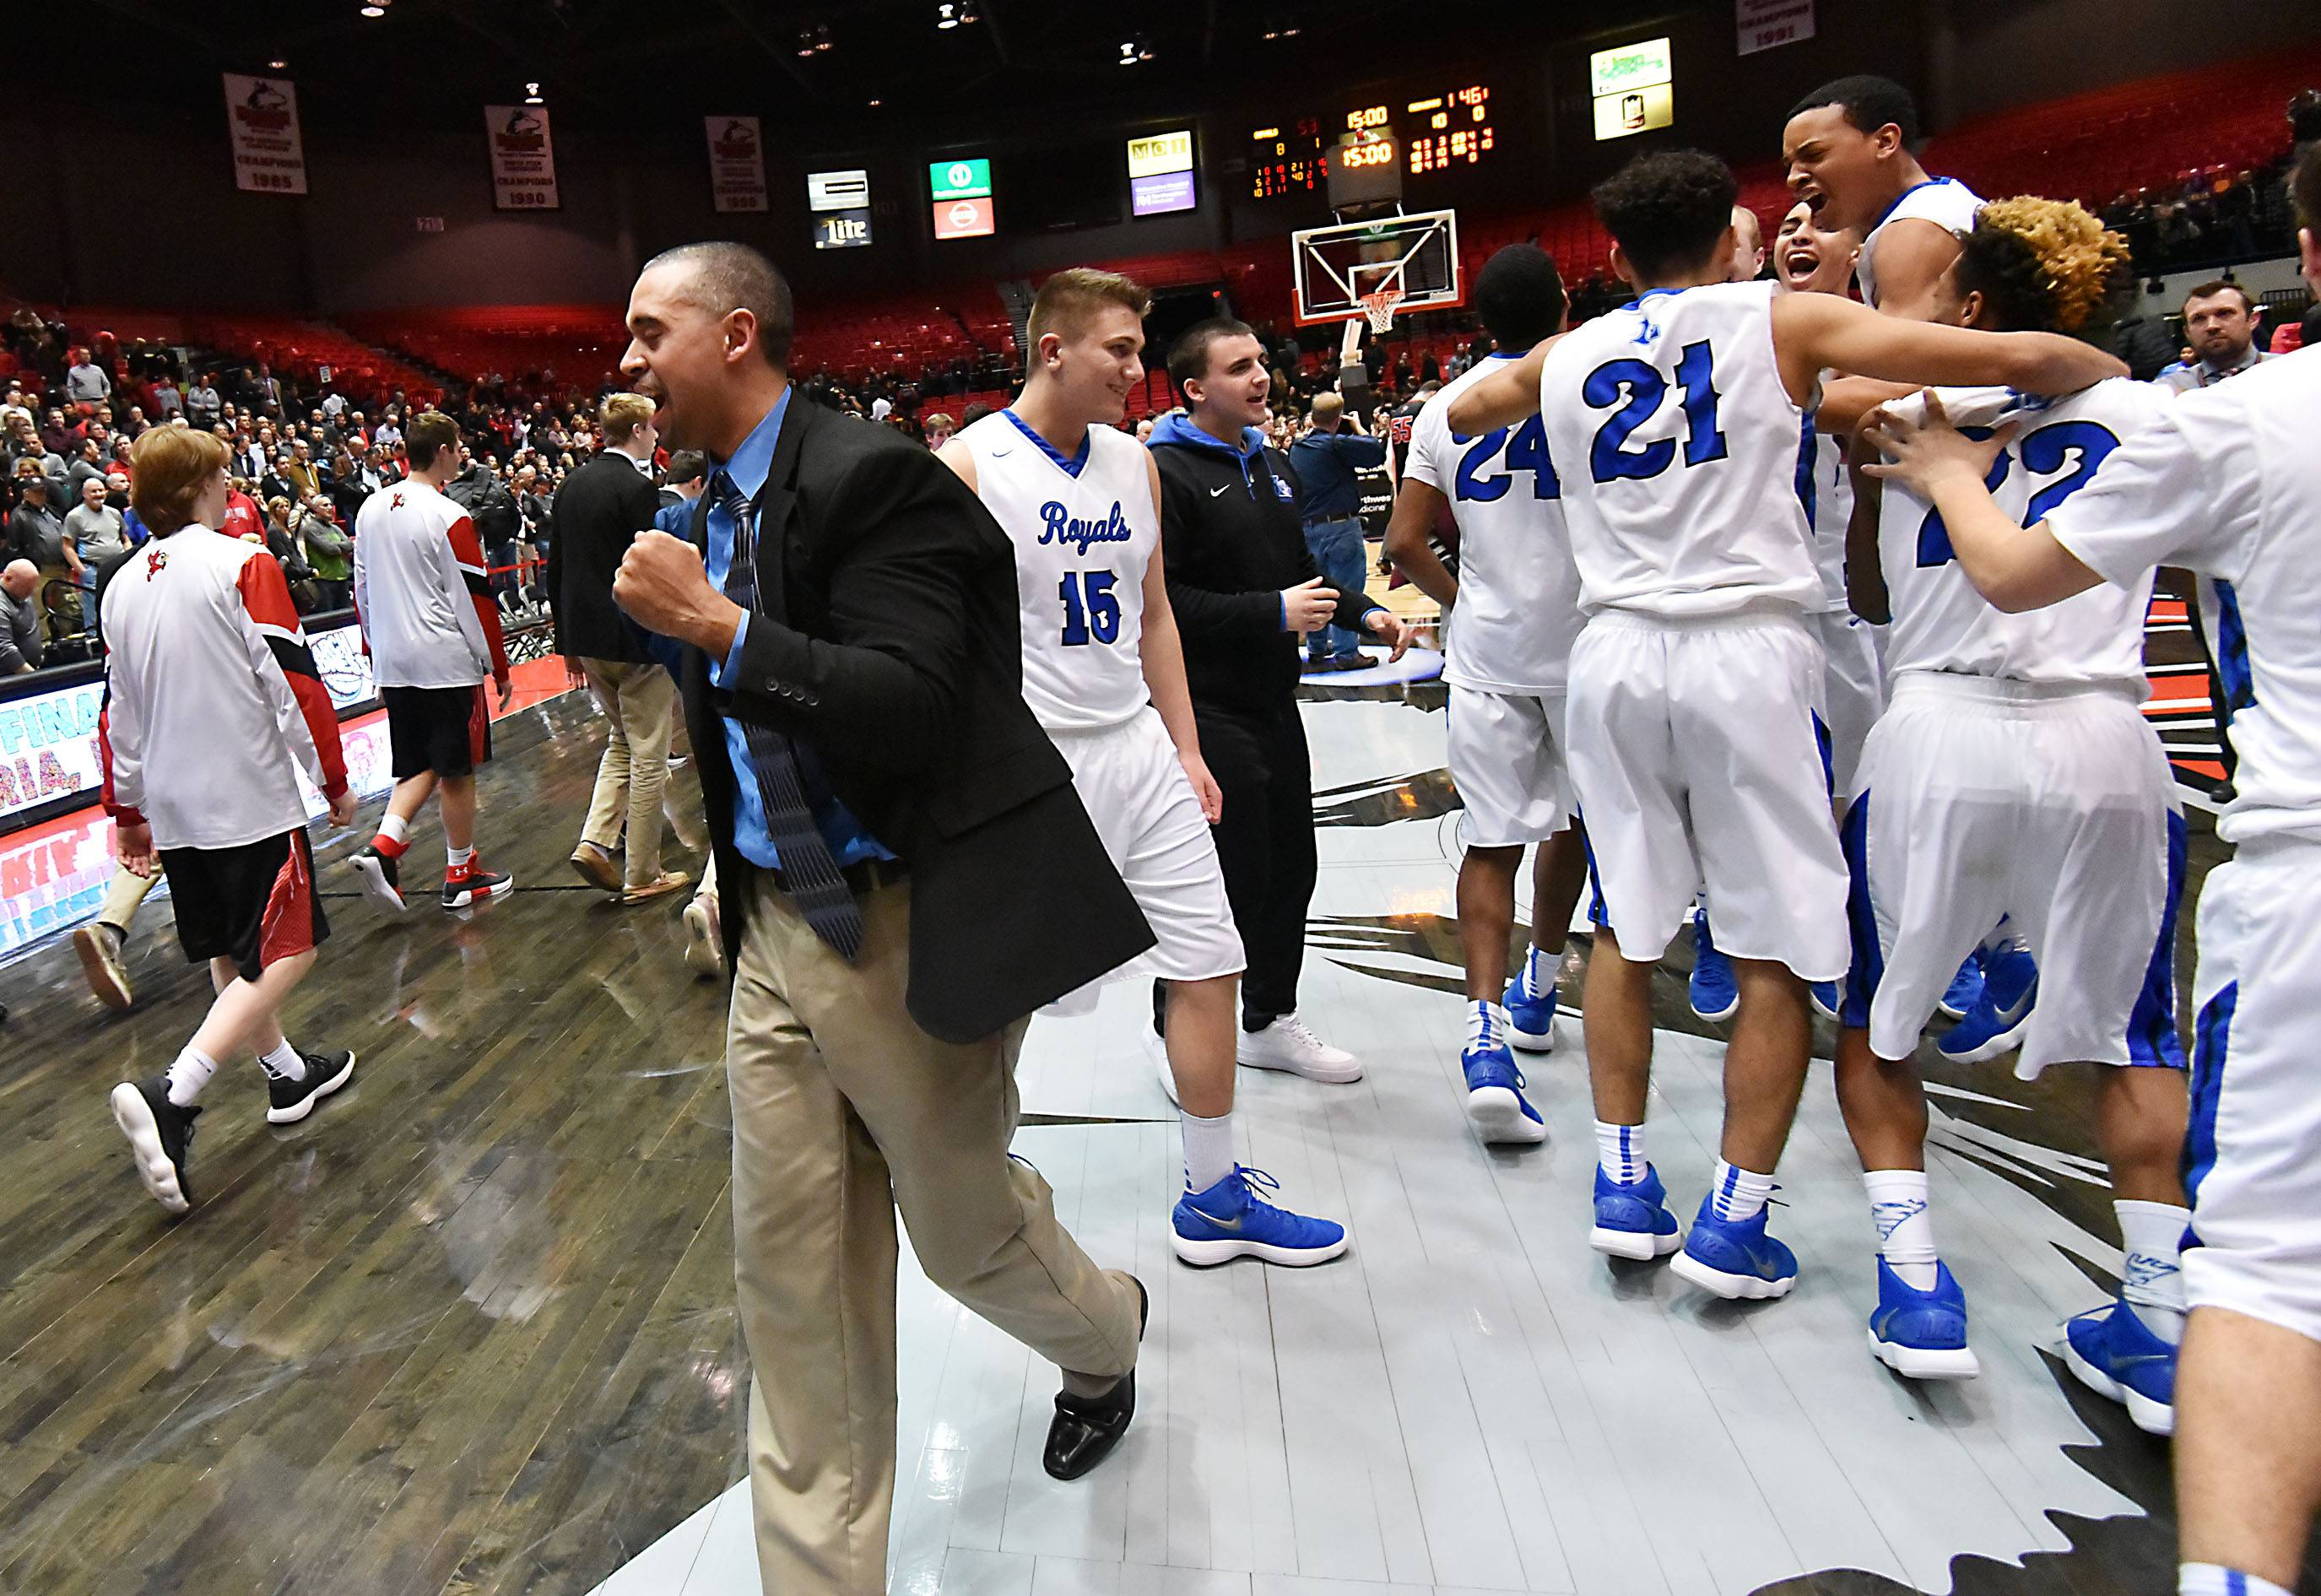 Larkin head coach Deryn Carter pumps his fist as the Royals celebrate their win against Benet in the Class 4A supersectional boys basketball game at Northern Illinois University Tuesday. Larkin takes on Belleville West in the state semifinals Friday in Peoria.